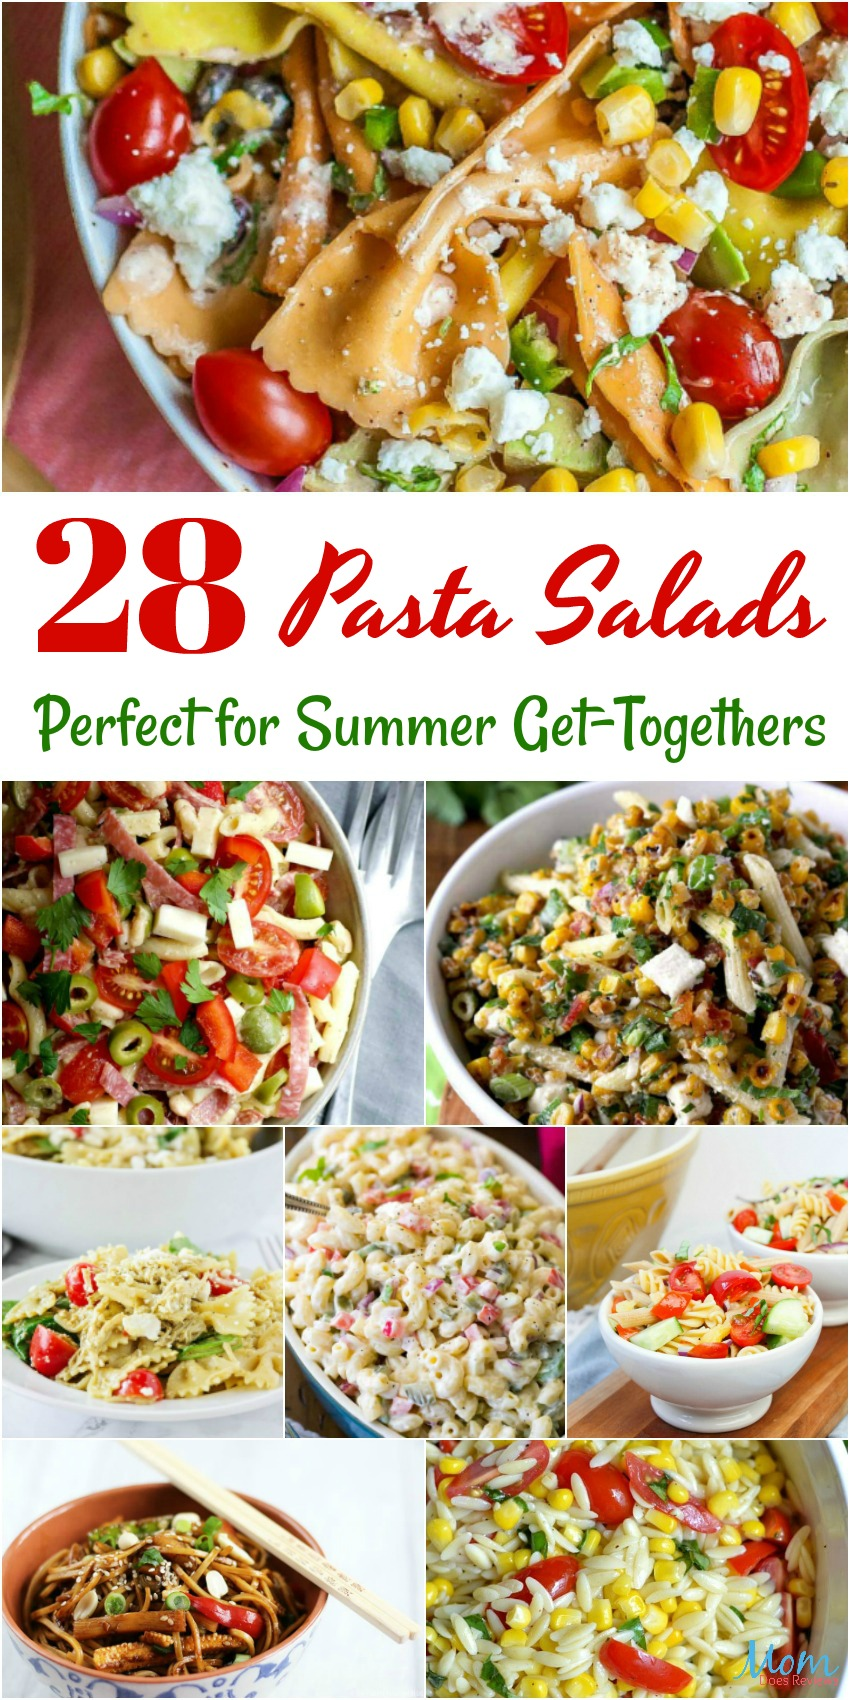 28 Pasta Salads that are Perfect for Summer Get-Togethers